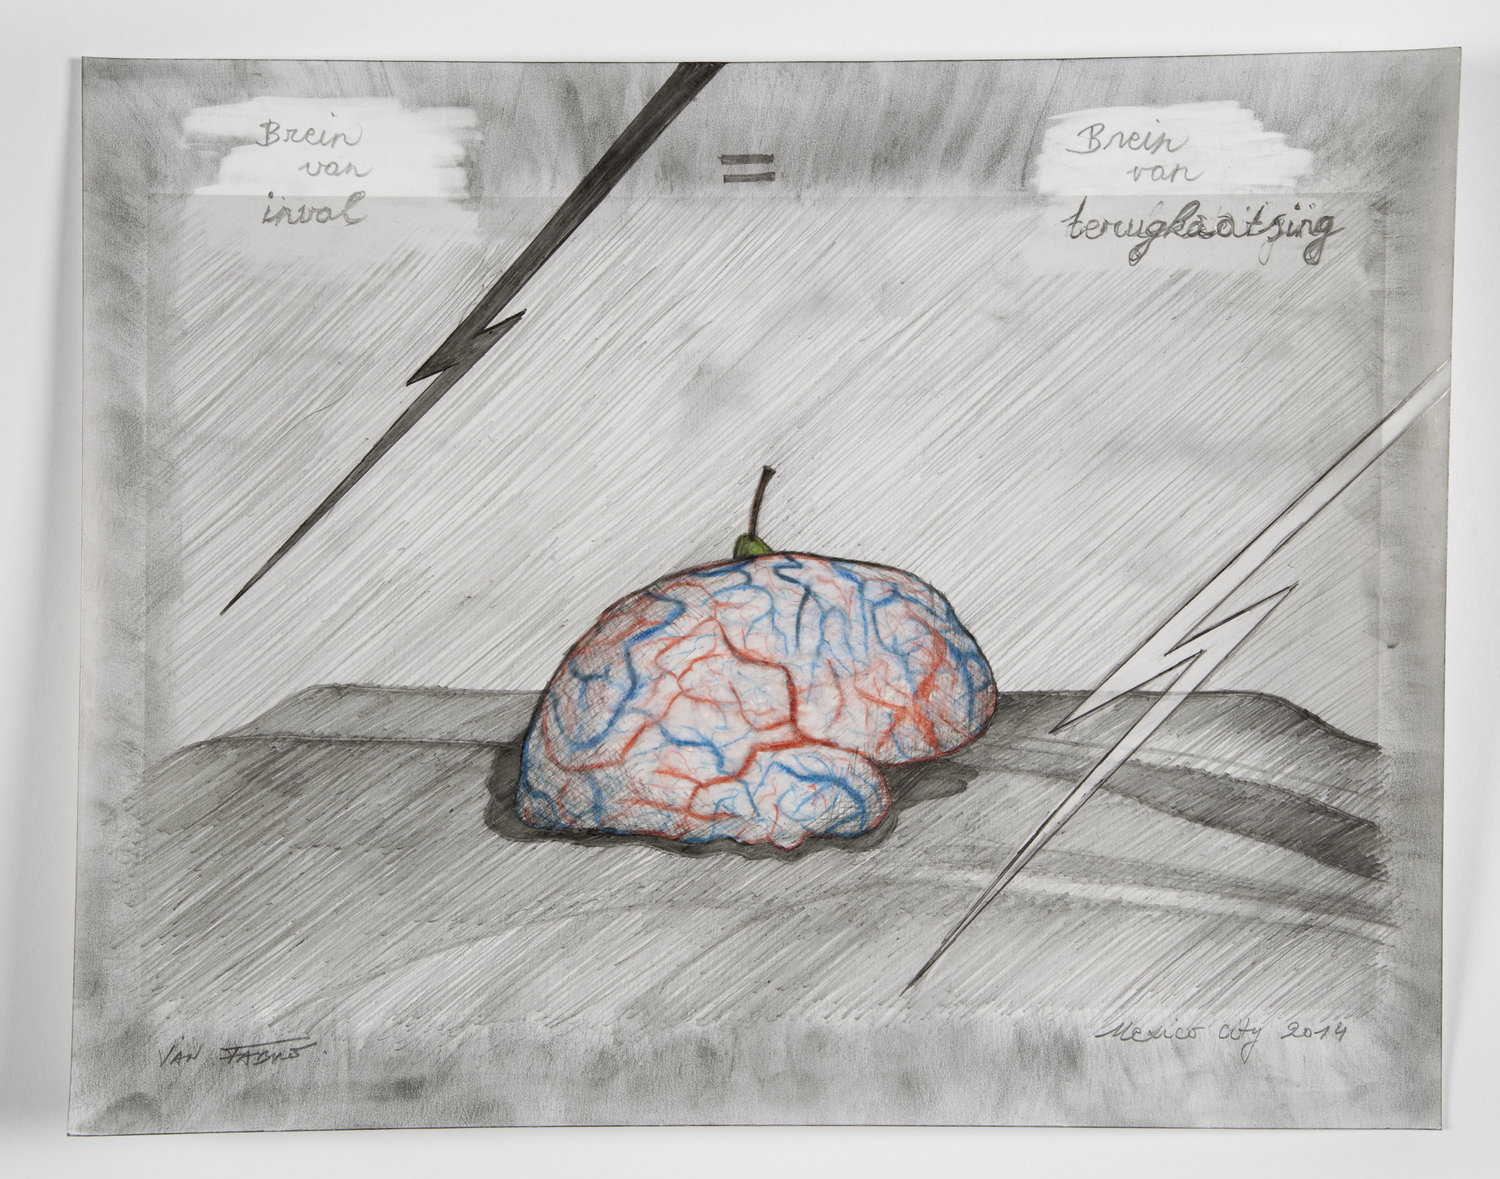 Jan Fabre, Brain of incidence = brain of reflection, 2014, HB pencil and colour pencil on photographic paper, 24x30.5 cm Photo Pat Verbruggen © Angelos bvba